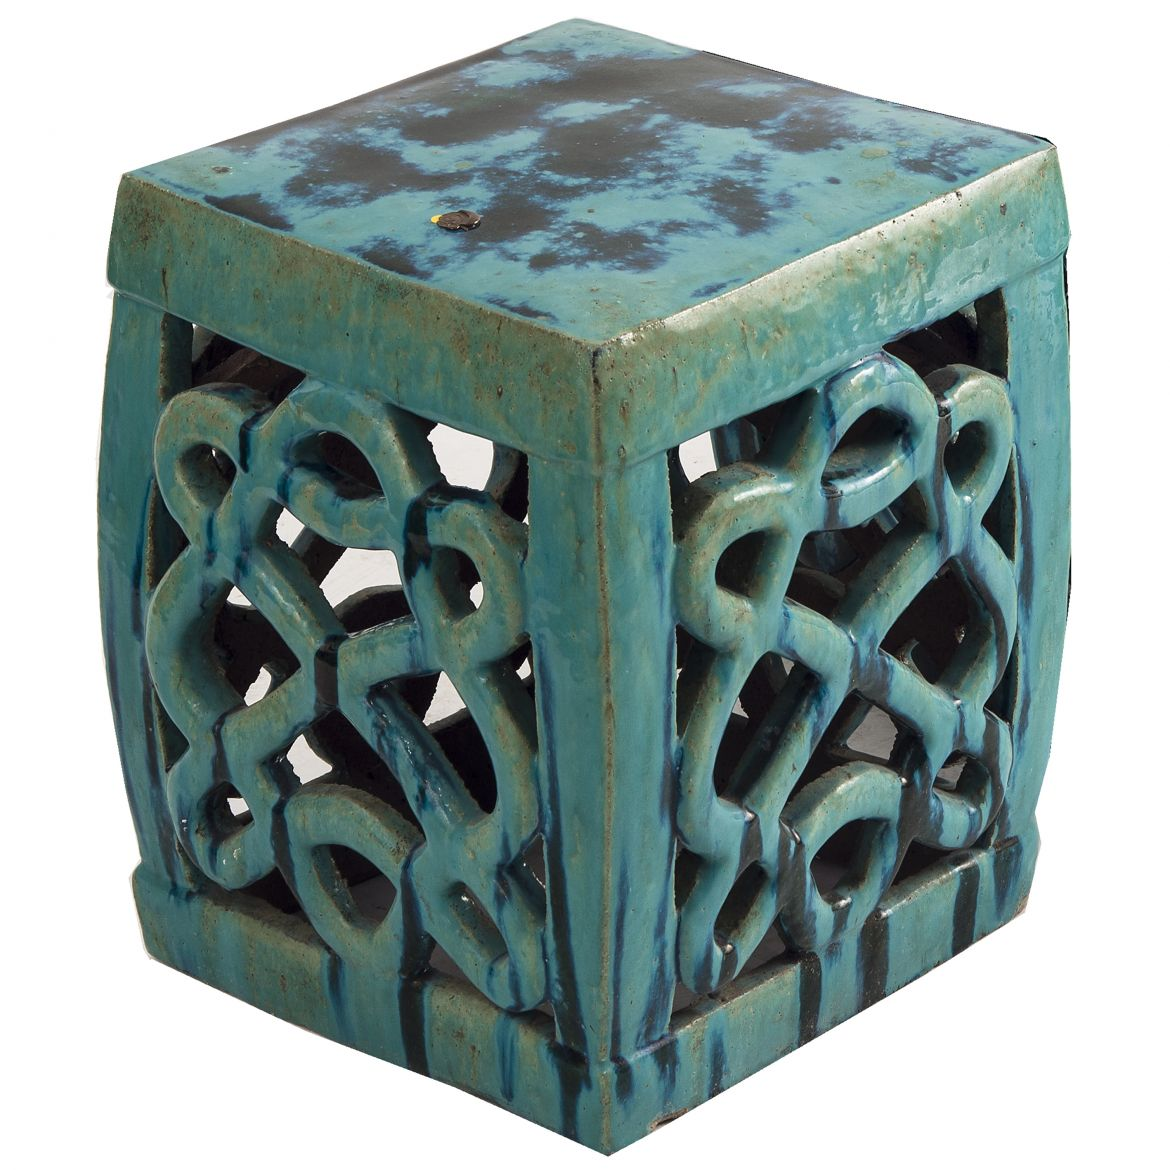 Chinese Glazed Stool